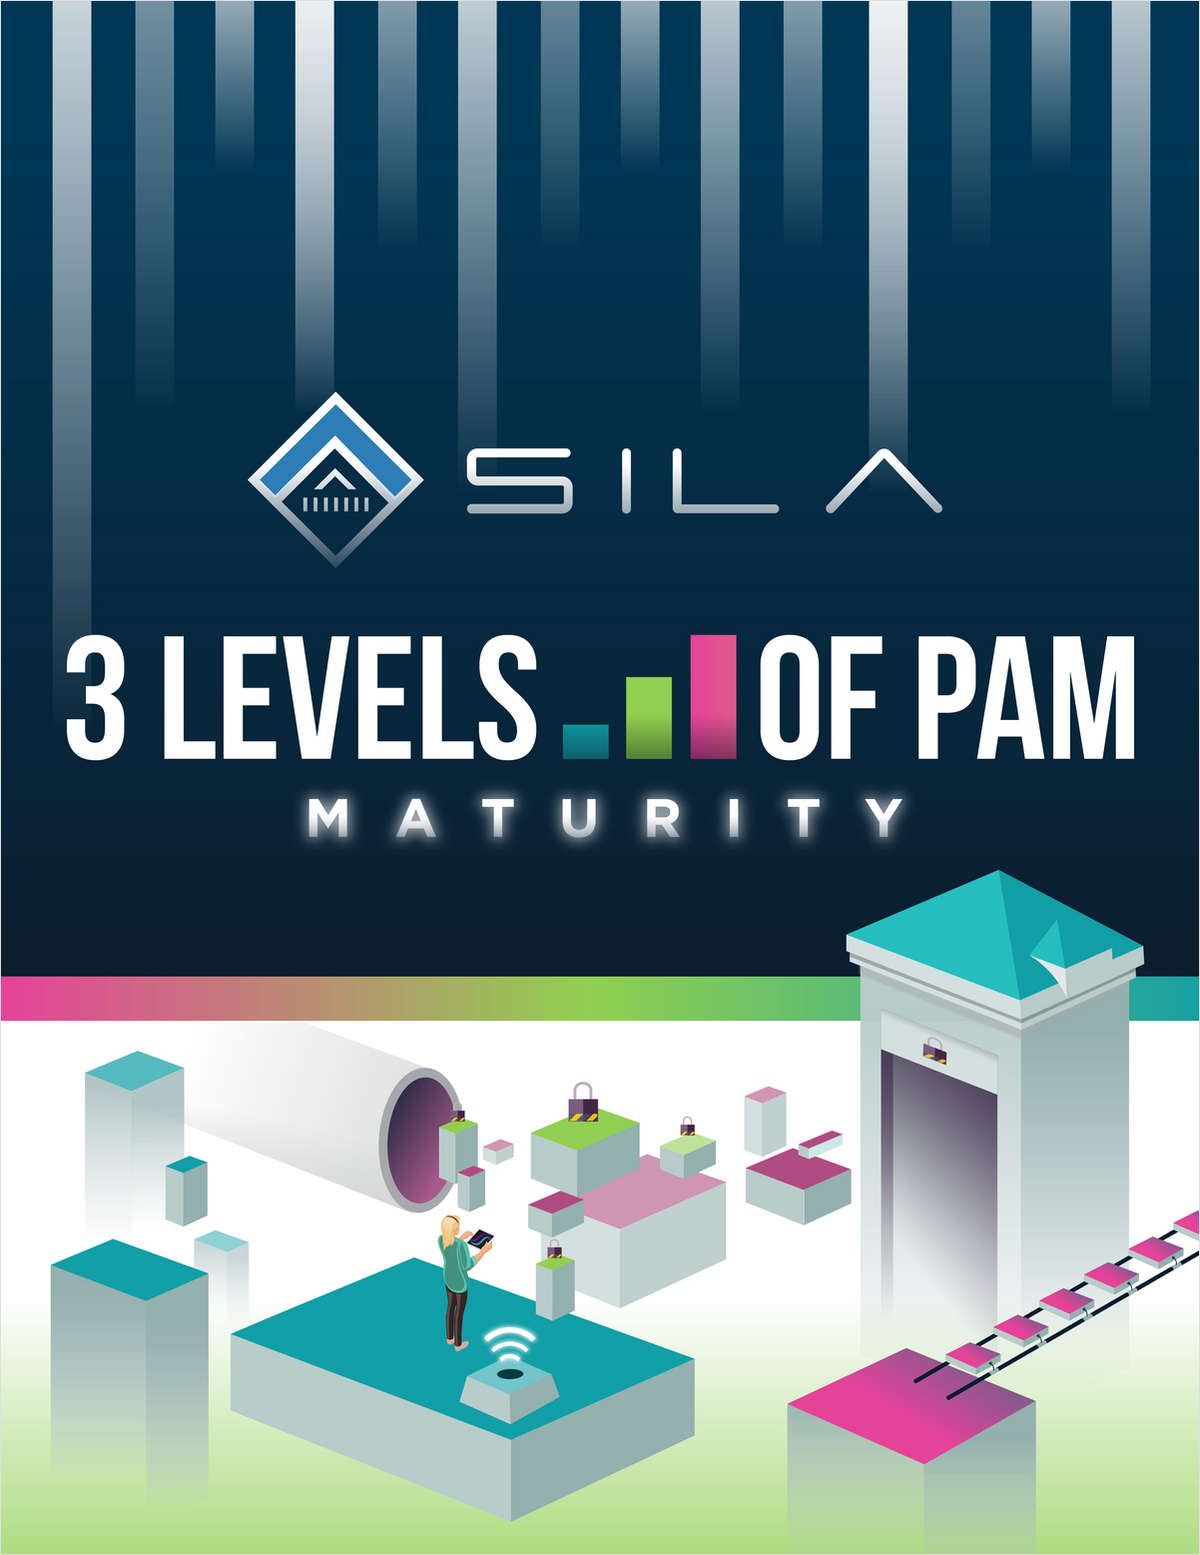 At-A-Glance: 3 Levels of PAM Maturity